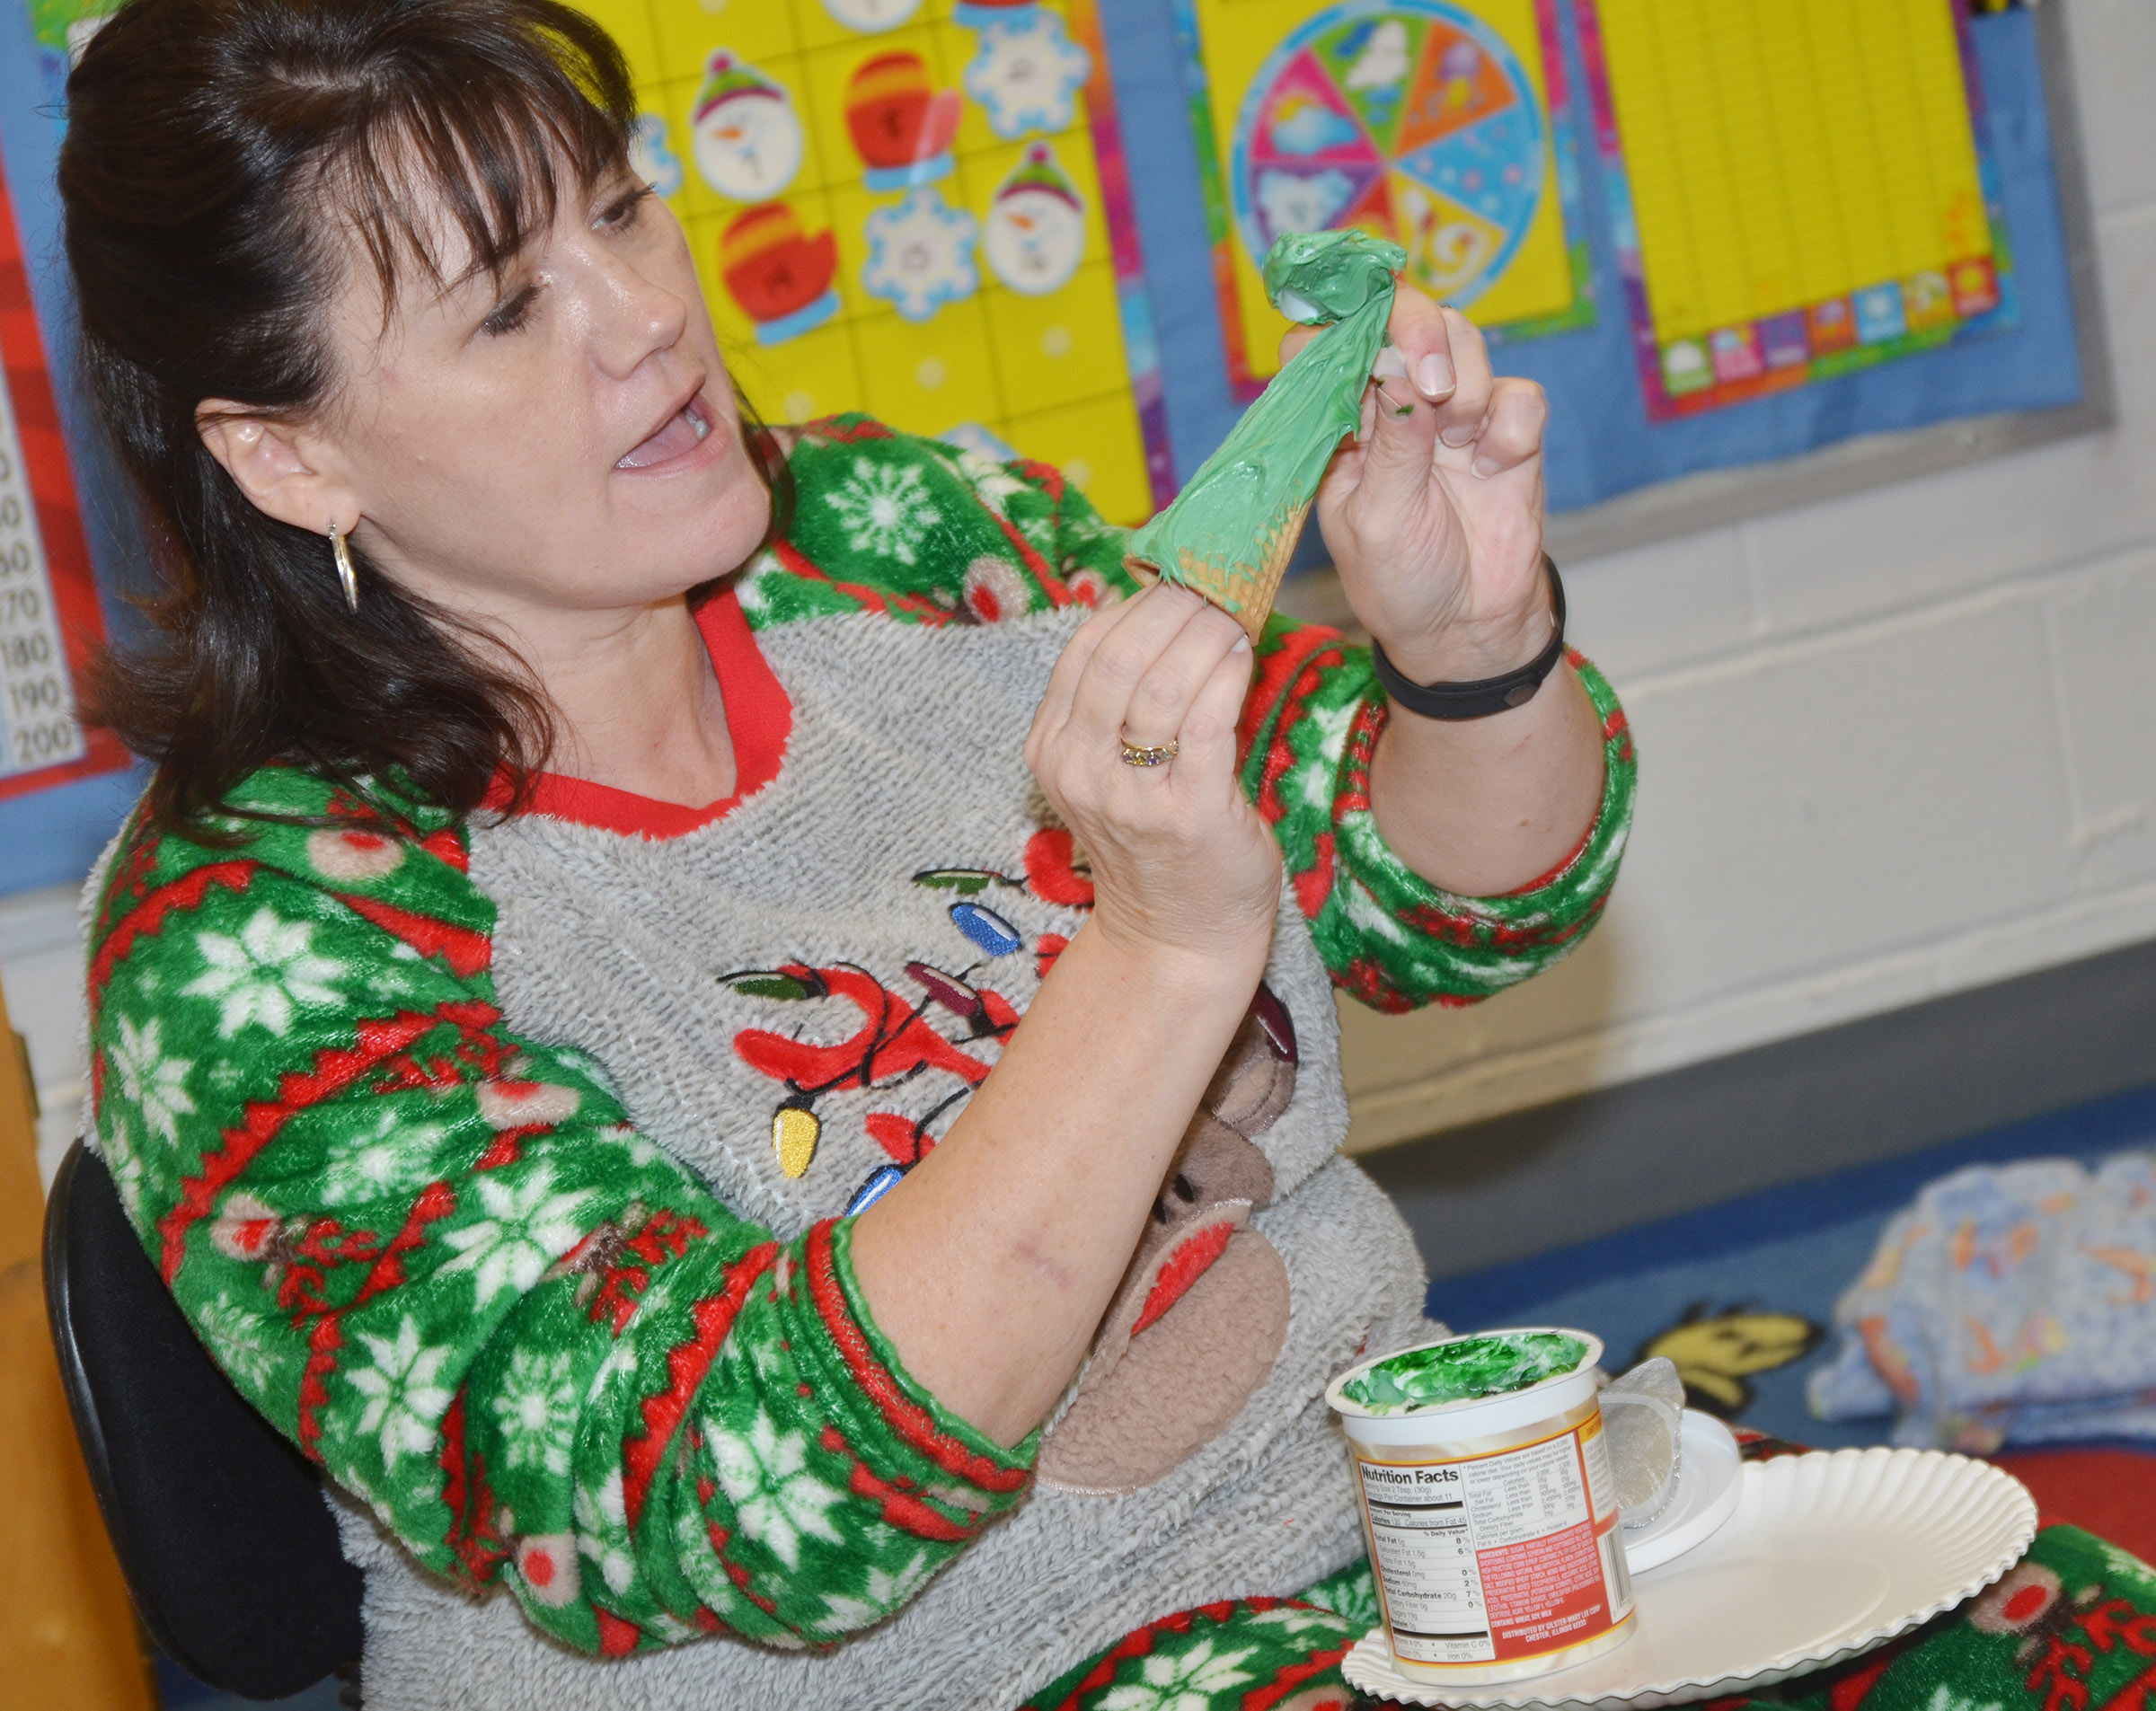 CES preschool teacher Denise Spencer shows students how to decorate their own edible Christmas trees.